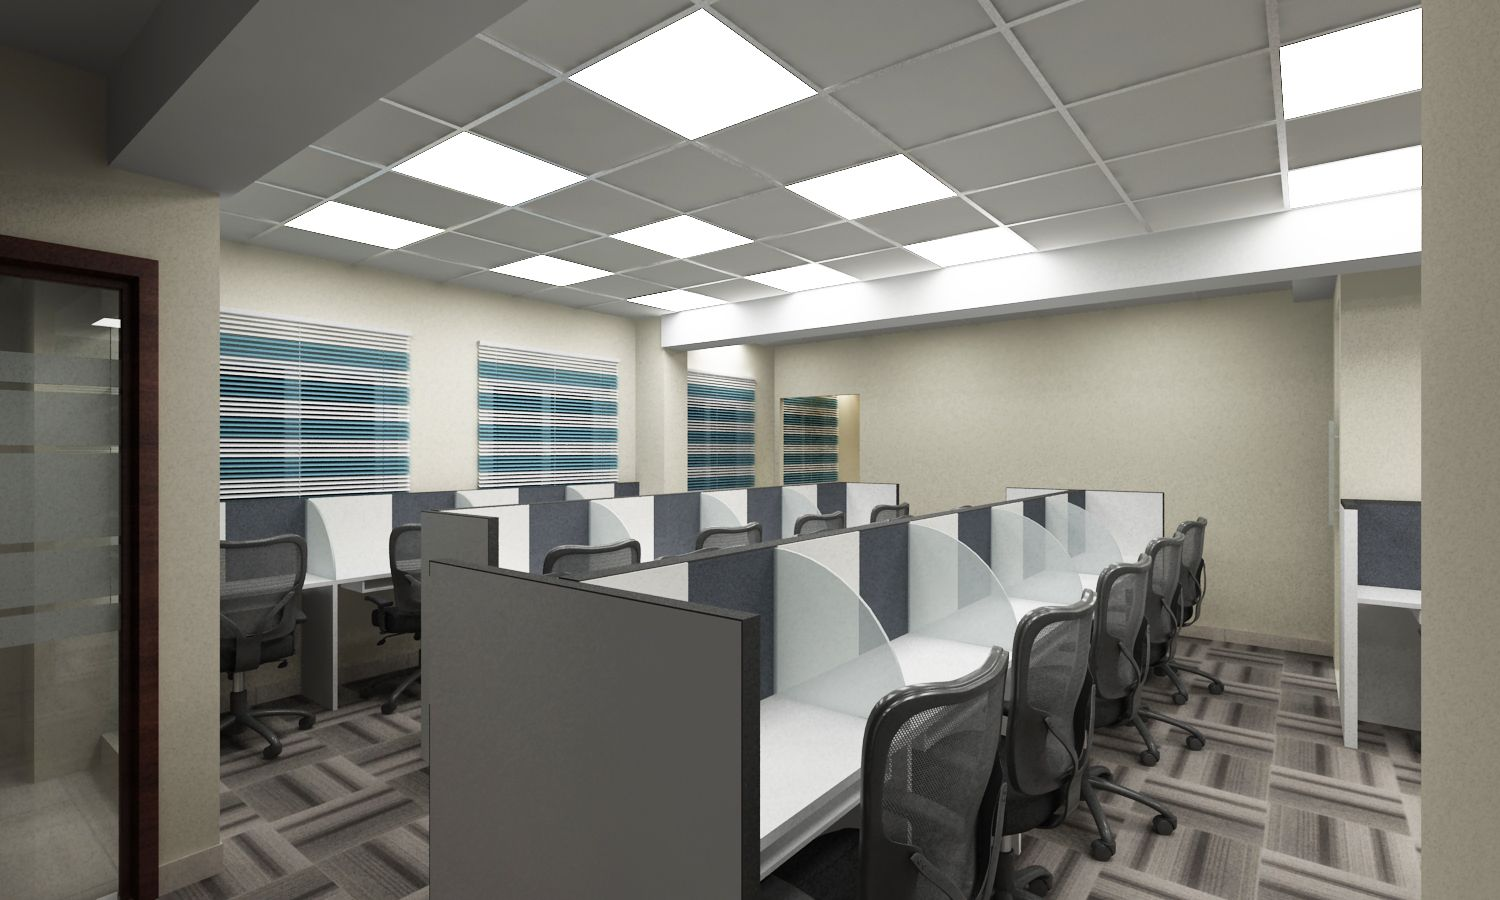 #interiorDesign Have a Look At Kal Informatics Office Elevation at Vijayawada, India If You Need Any Related Services 📞 +91-040-64544555, +91-9963803333 📧 Email: info@wallsasia.com